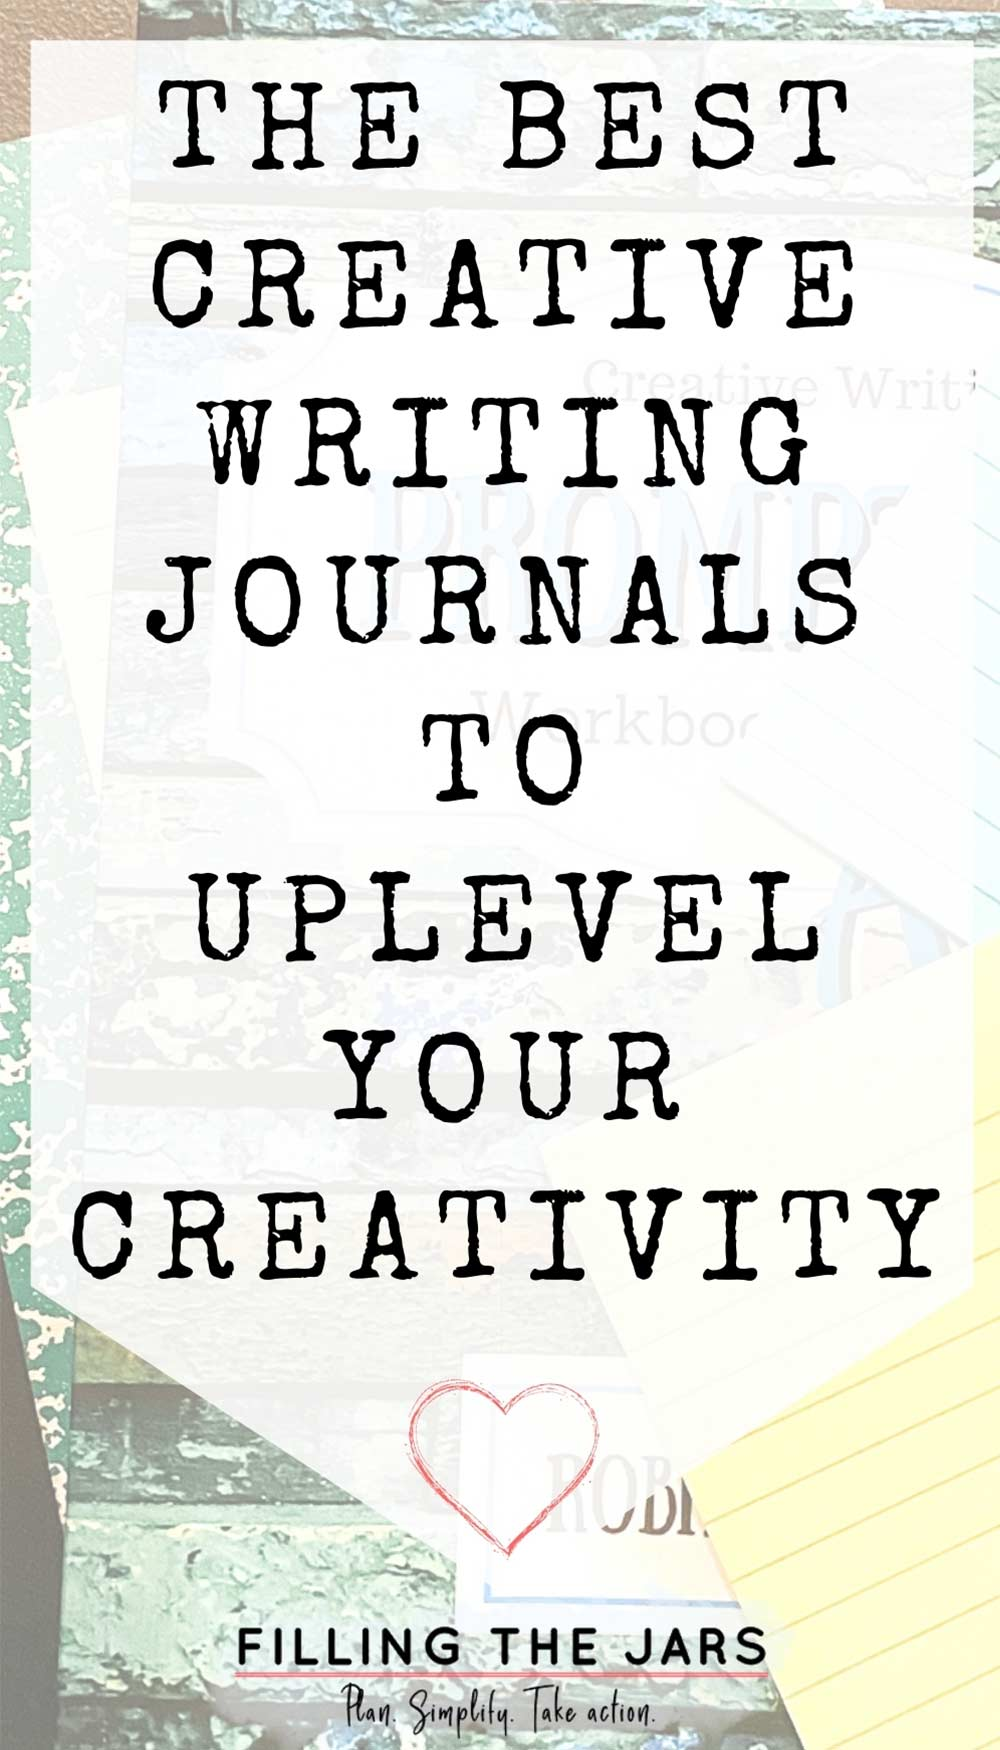 Text best creative writing journals to uplevel your creativity on white background over image of creative writing journal, notebook, and sticky notes on brown table.